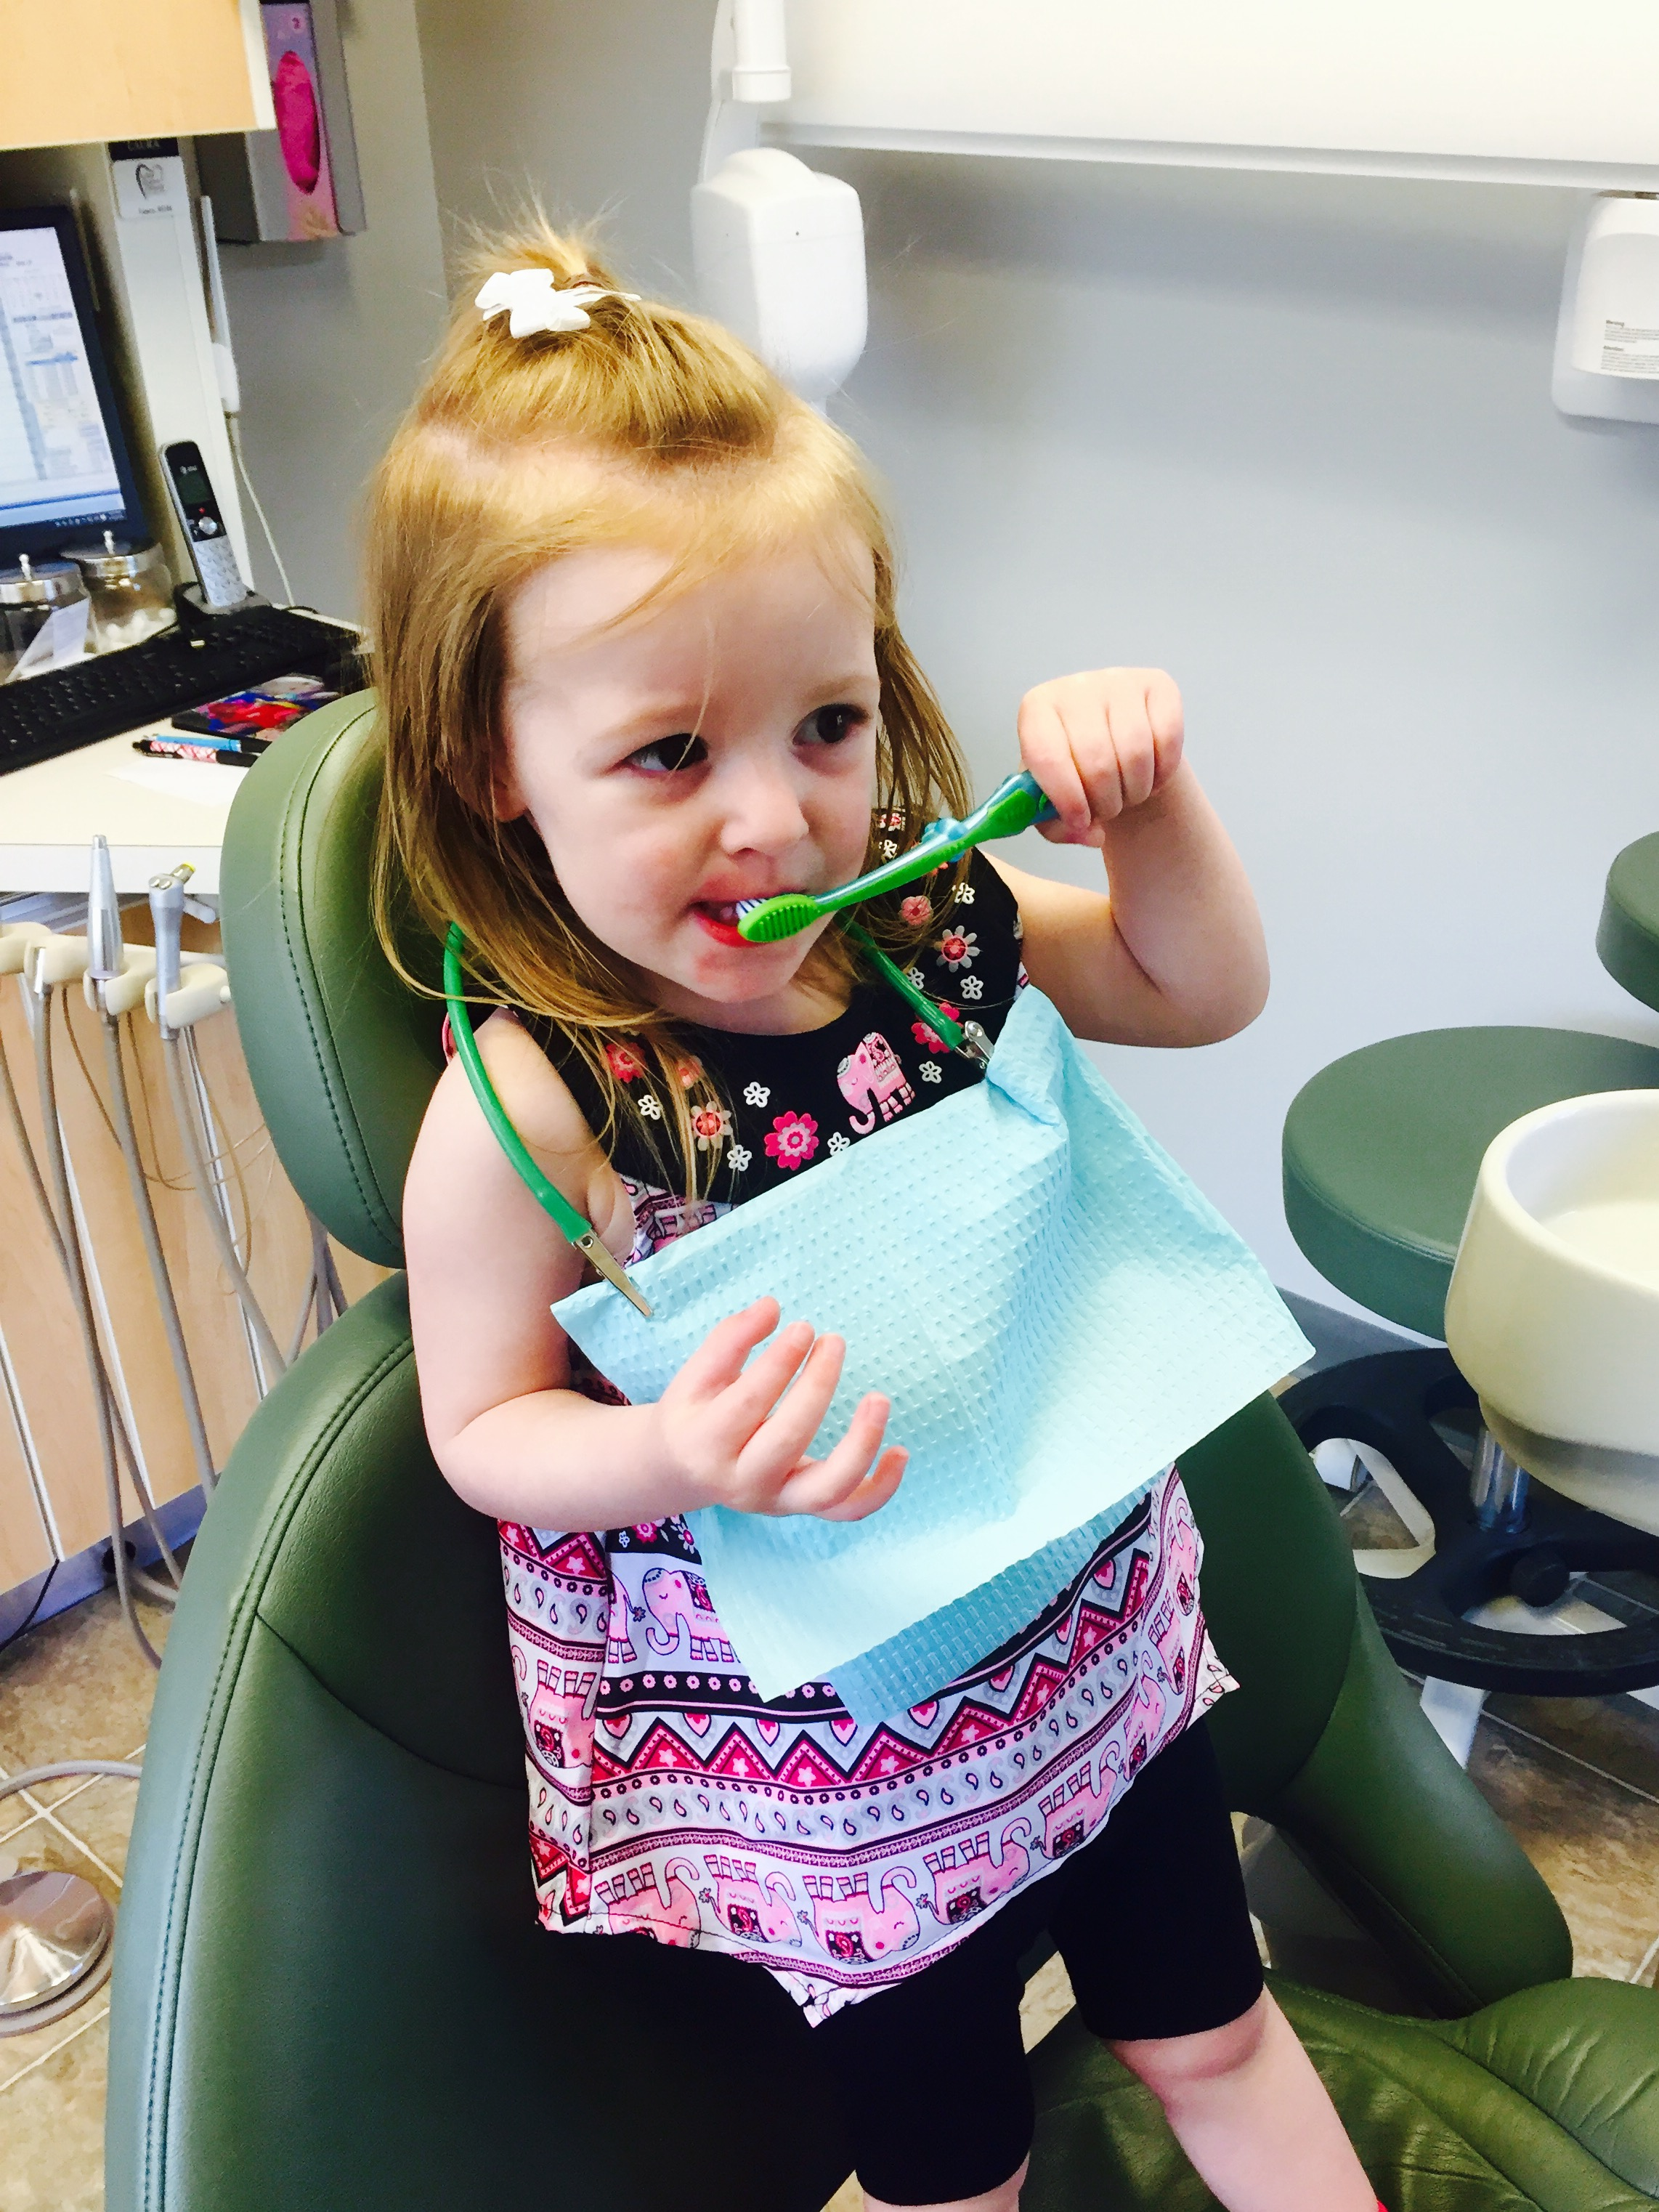 By beginning dental visits around age 1, kids can get used visiting the dentist and are actually excited to see us!